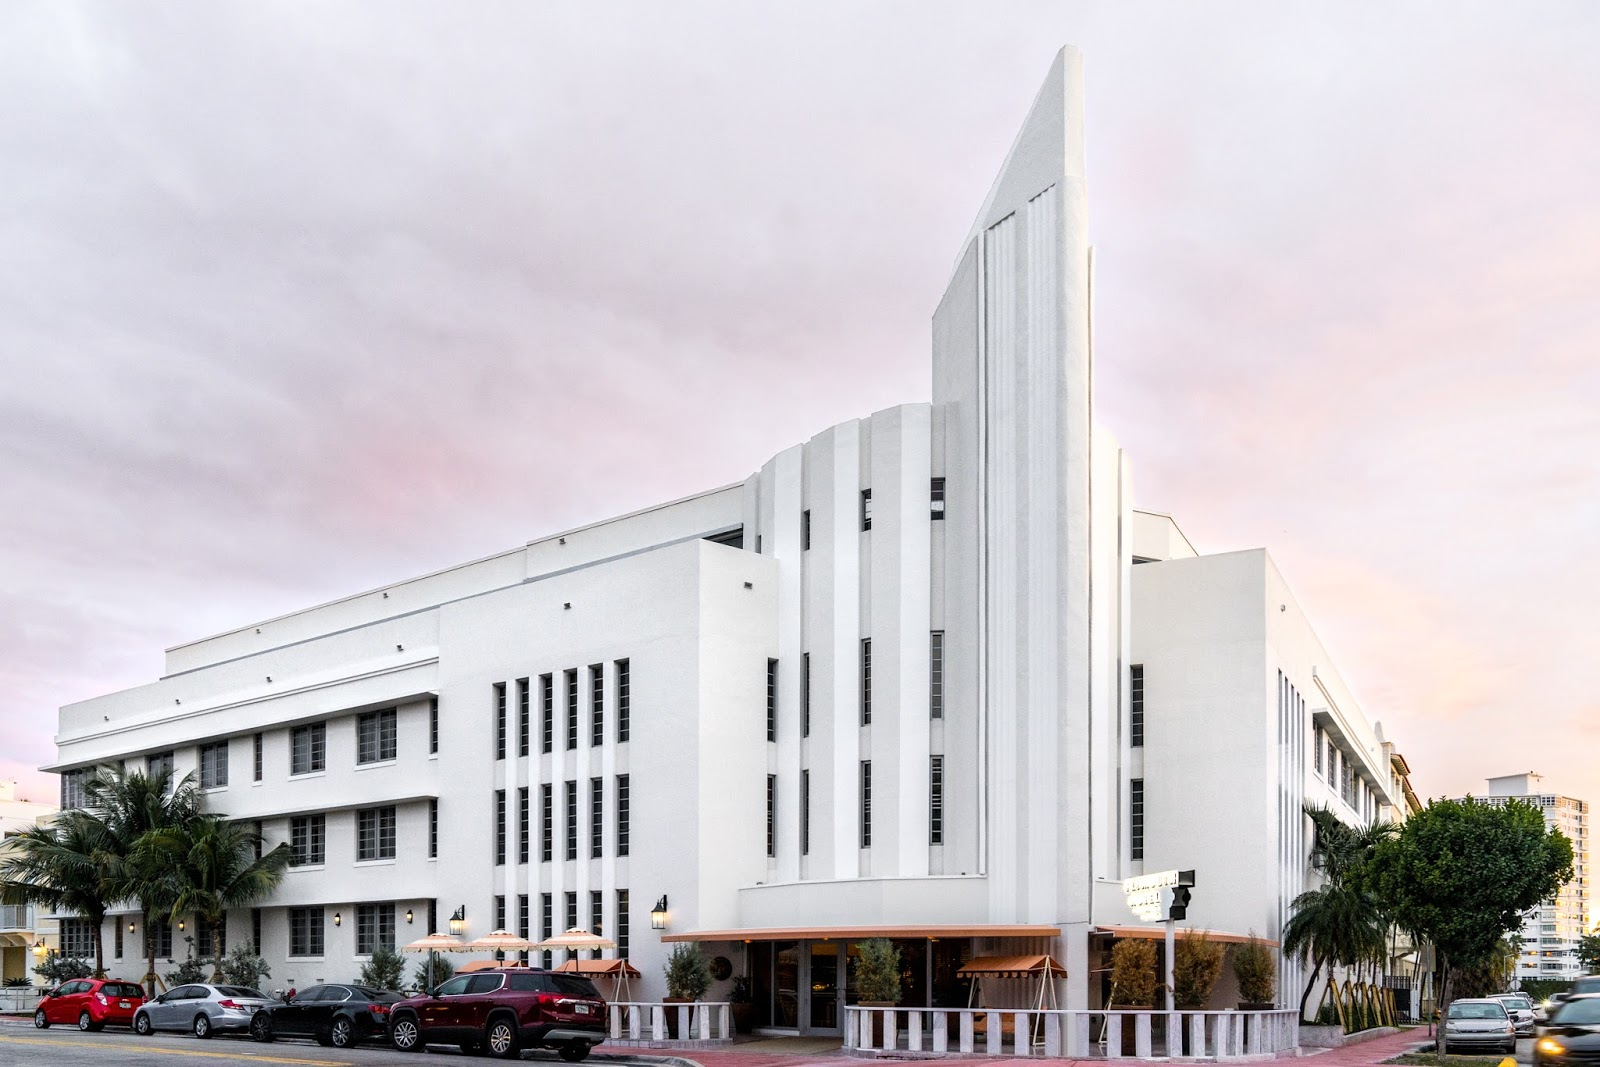 Miami Beach January 2017 When It Opened In 1940 Nothing Looked Like The Plymouth An Art Deco Icon That Epitomized Glamour And Style Of Its Time